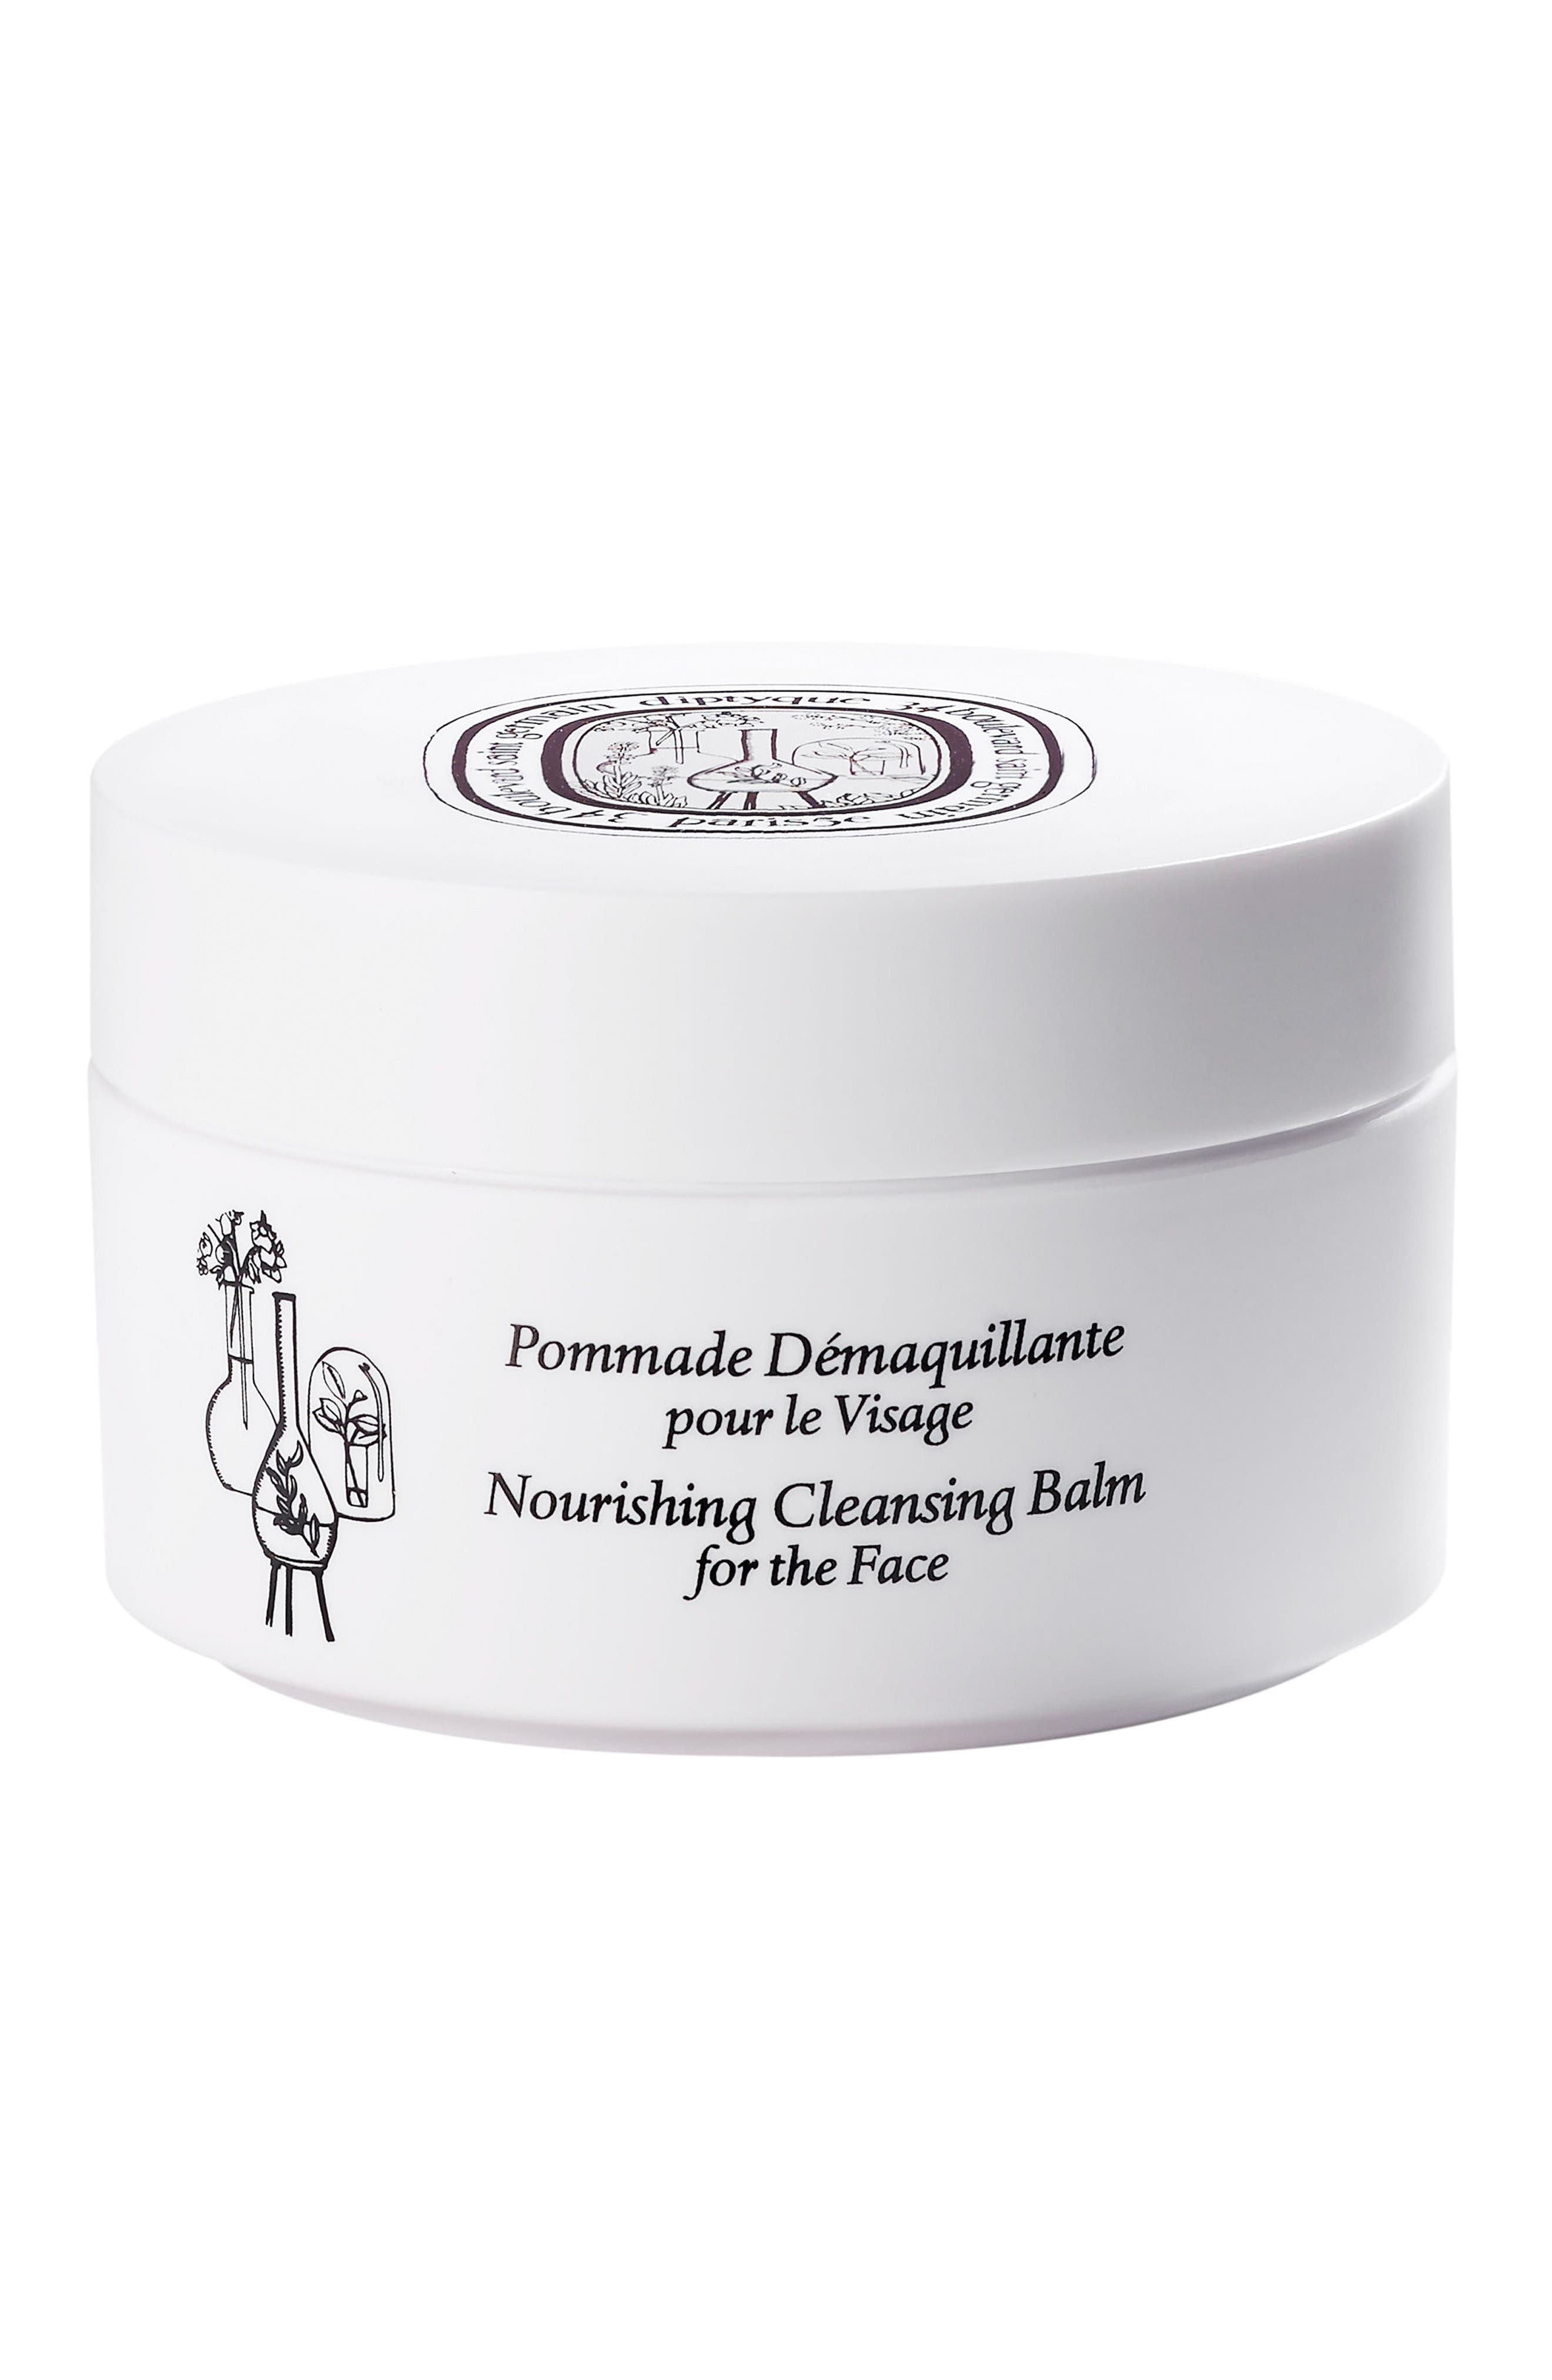 Nourishing Cleansing Balm for the Face,                         Main,                         color, No Color